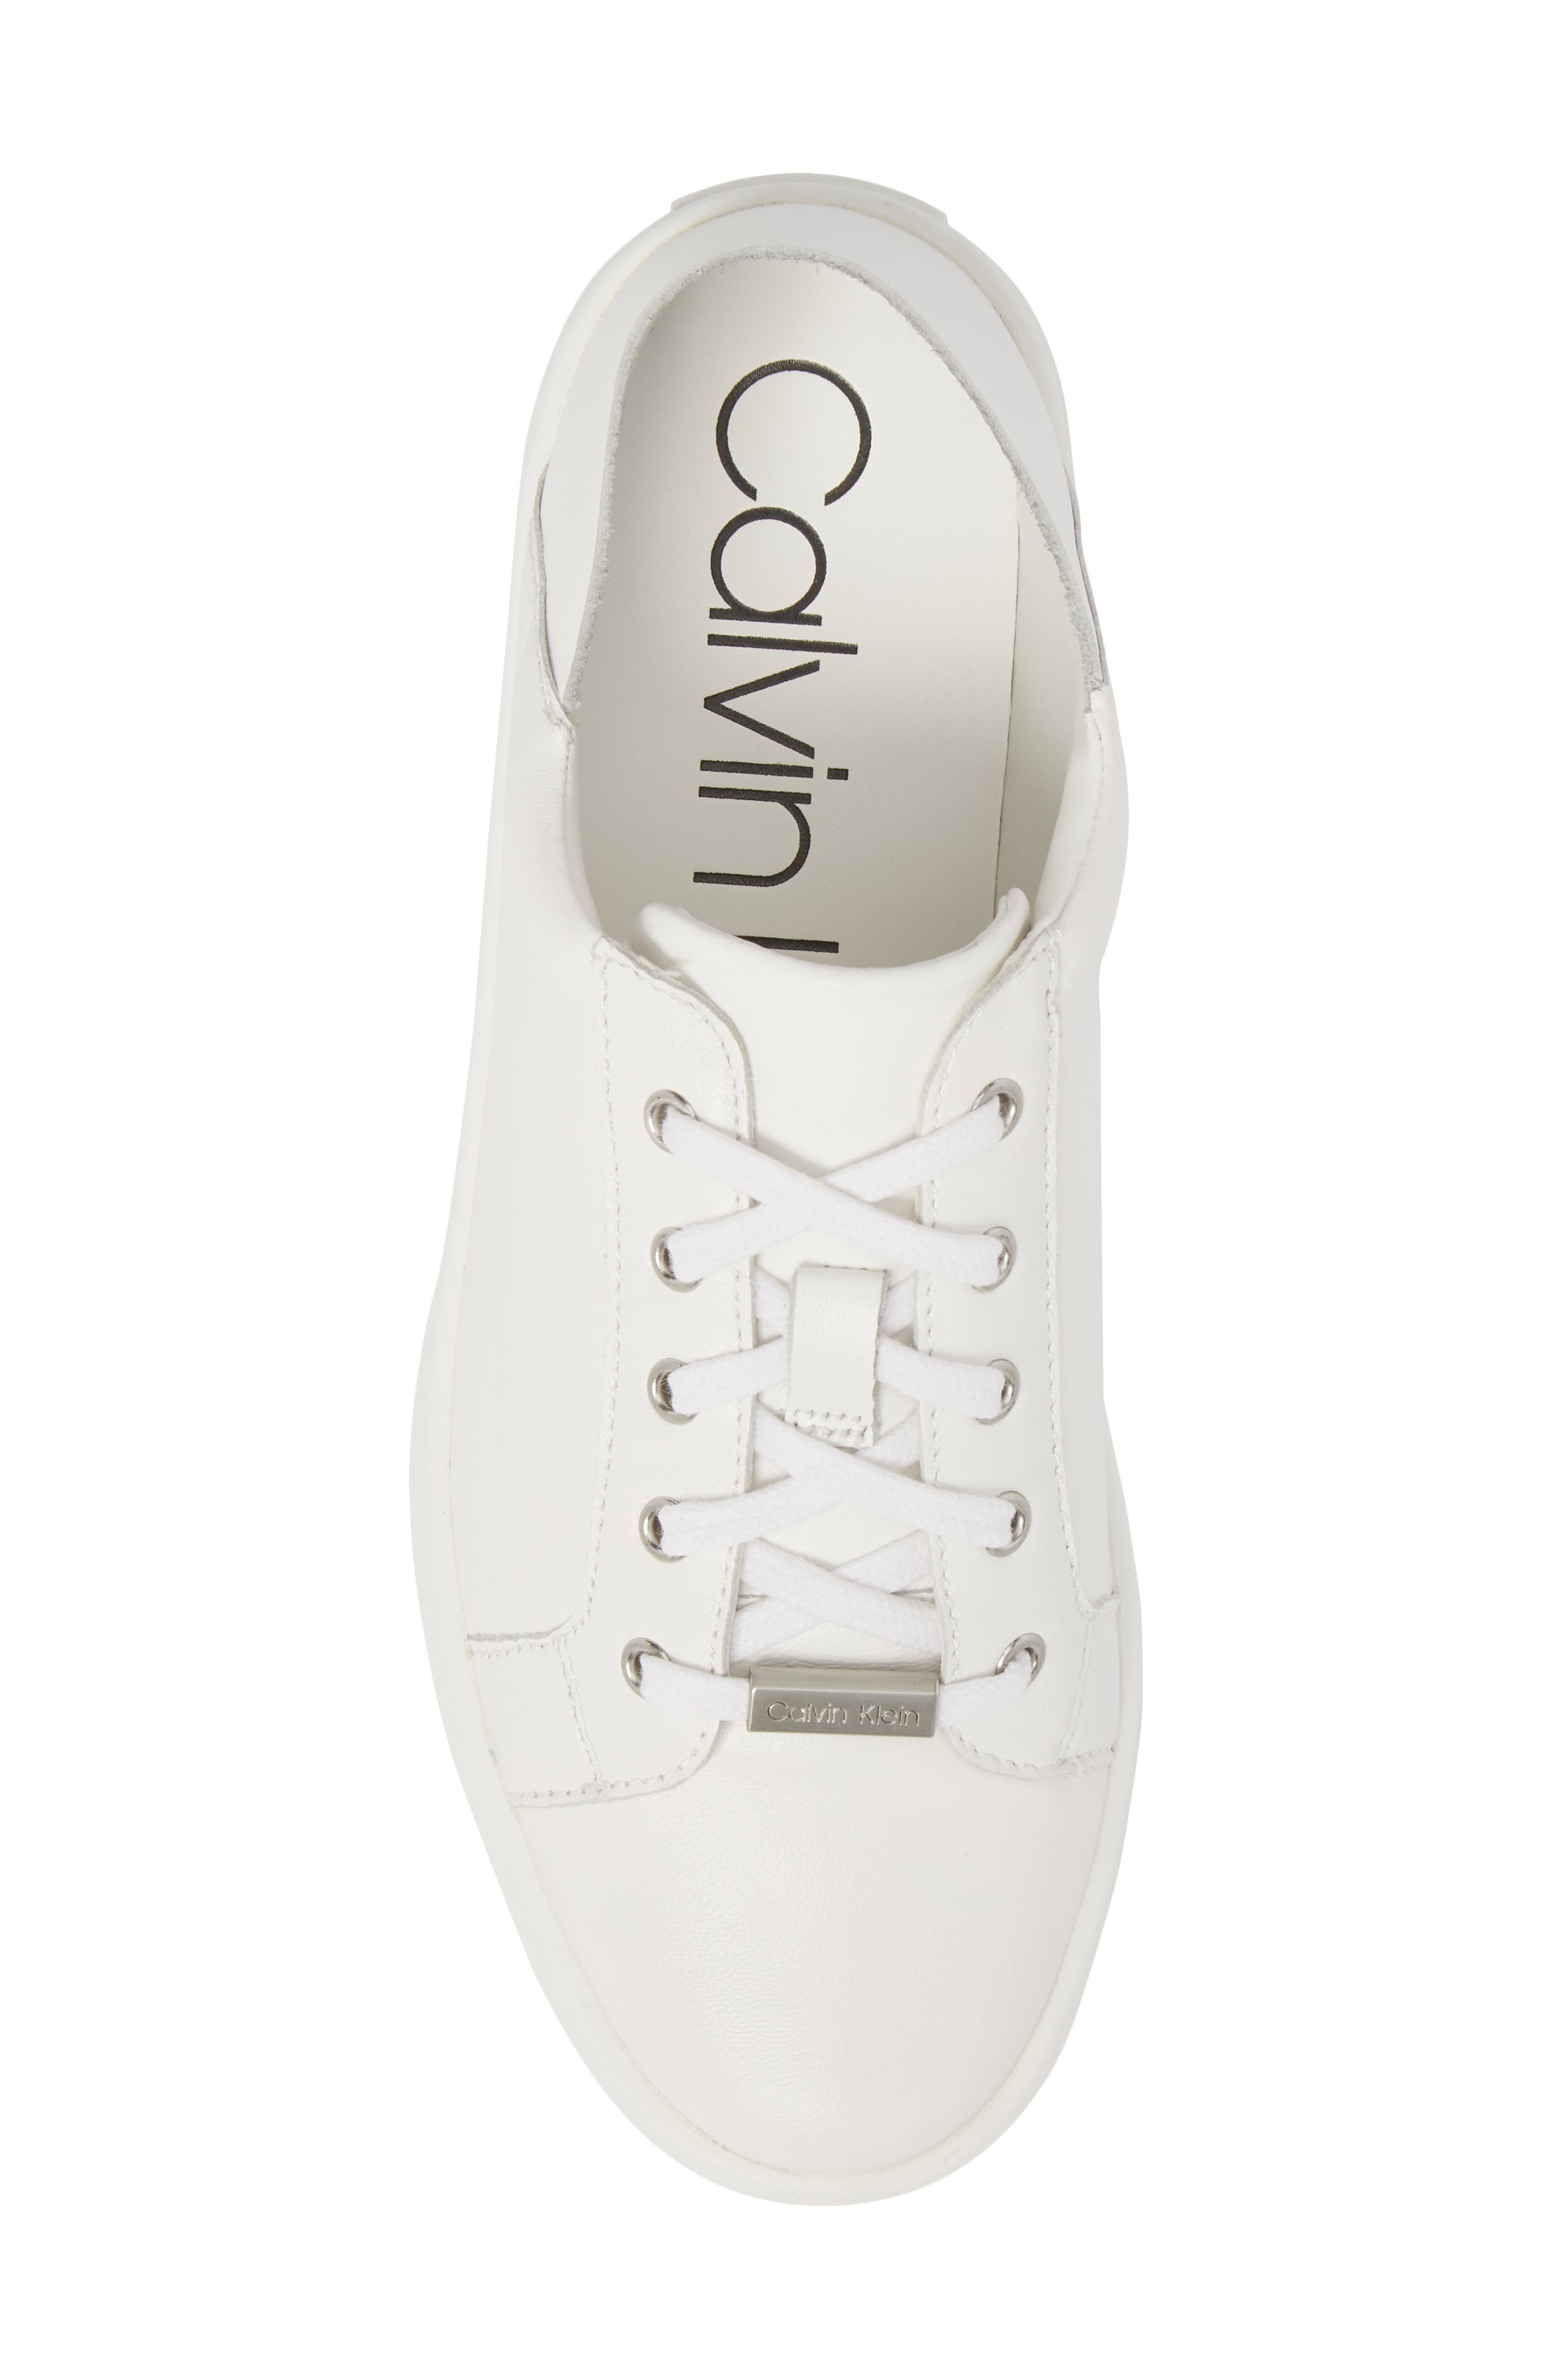 Danica Convertible Sneaker,                             Alternate thumbnail 6, color,                             White/ White Leather